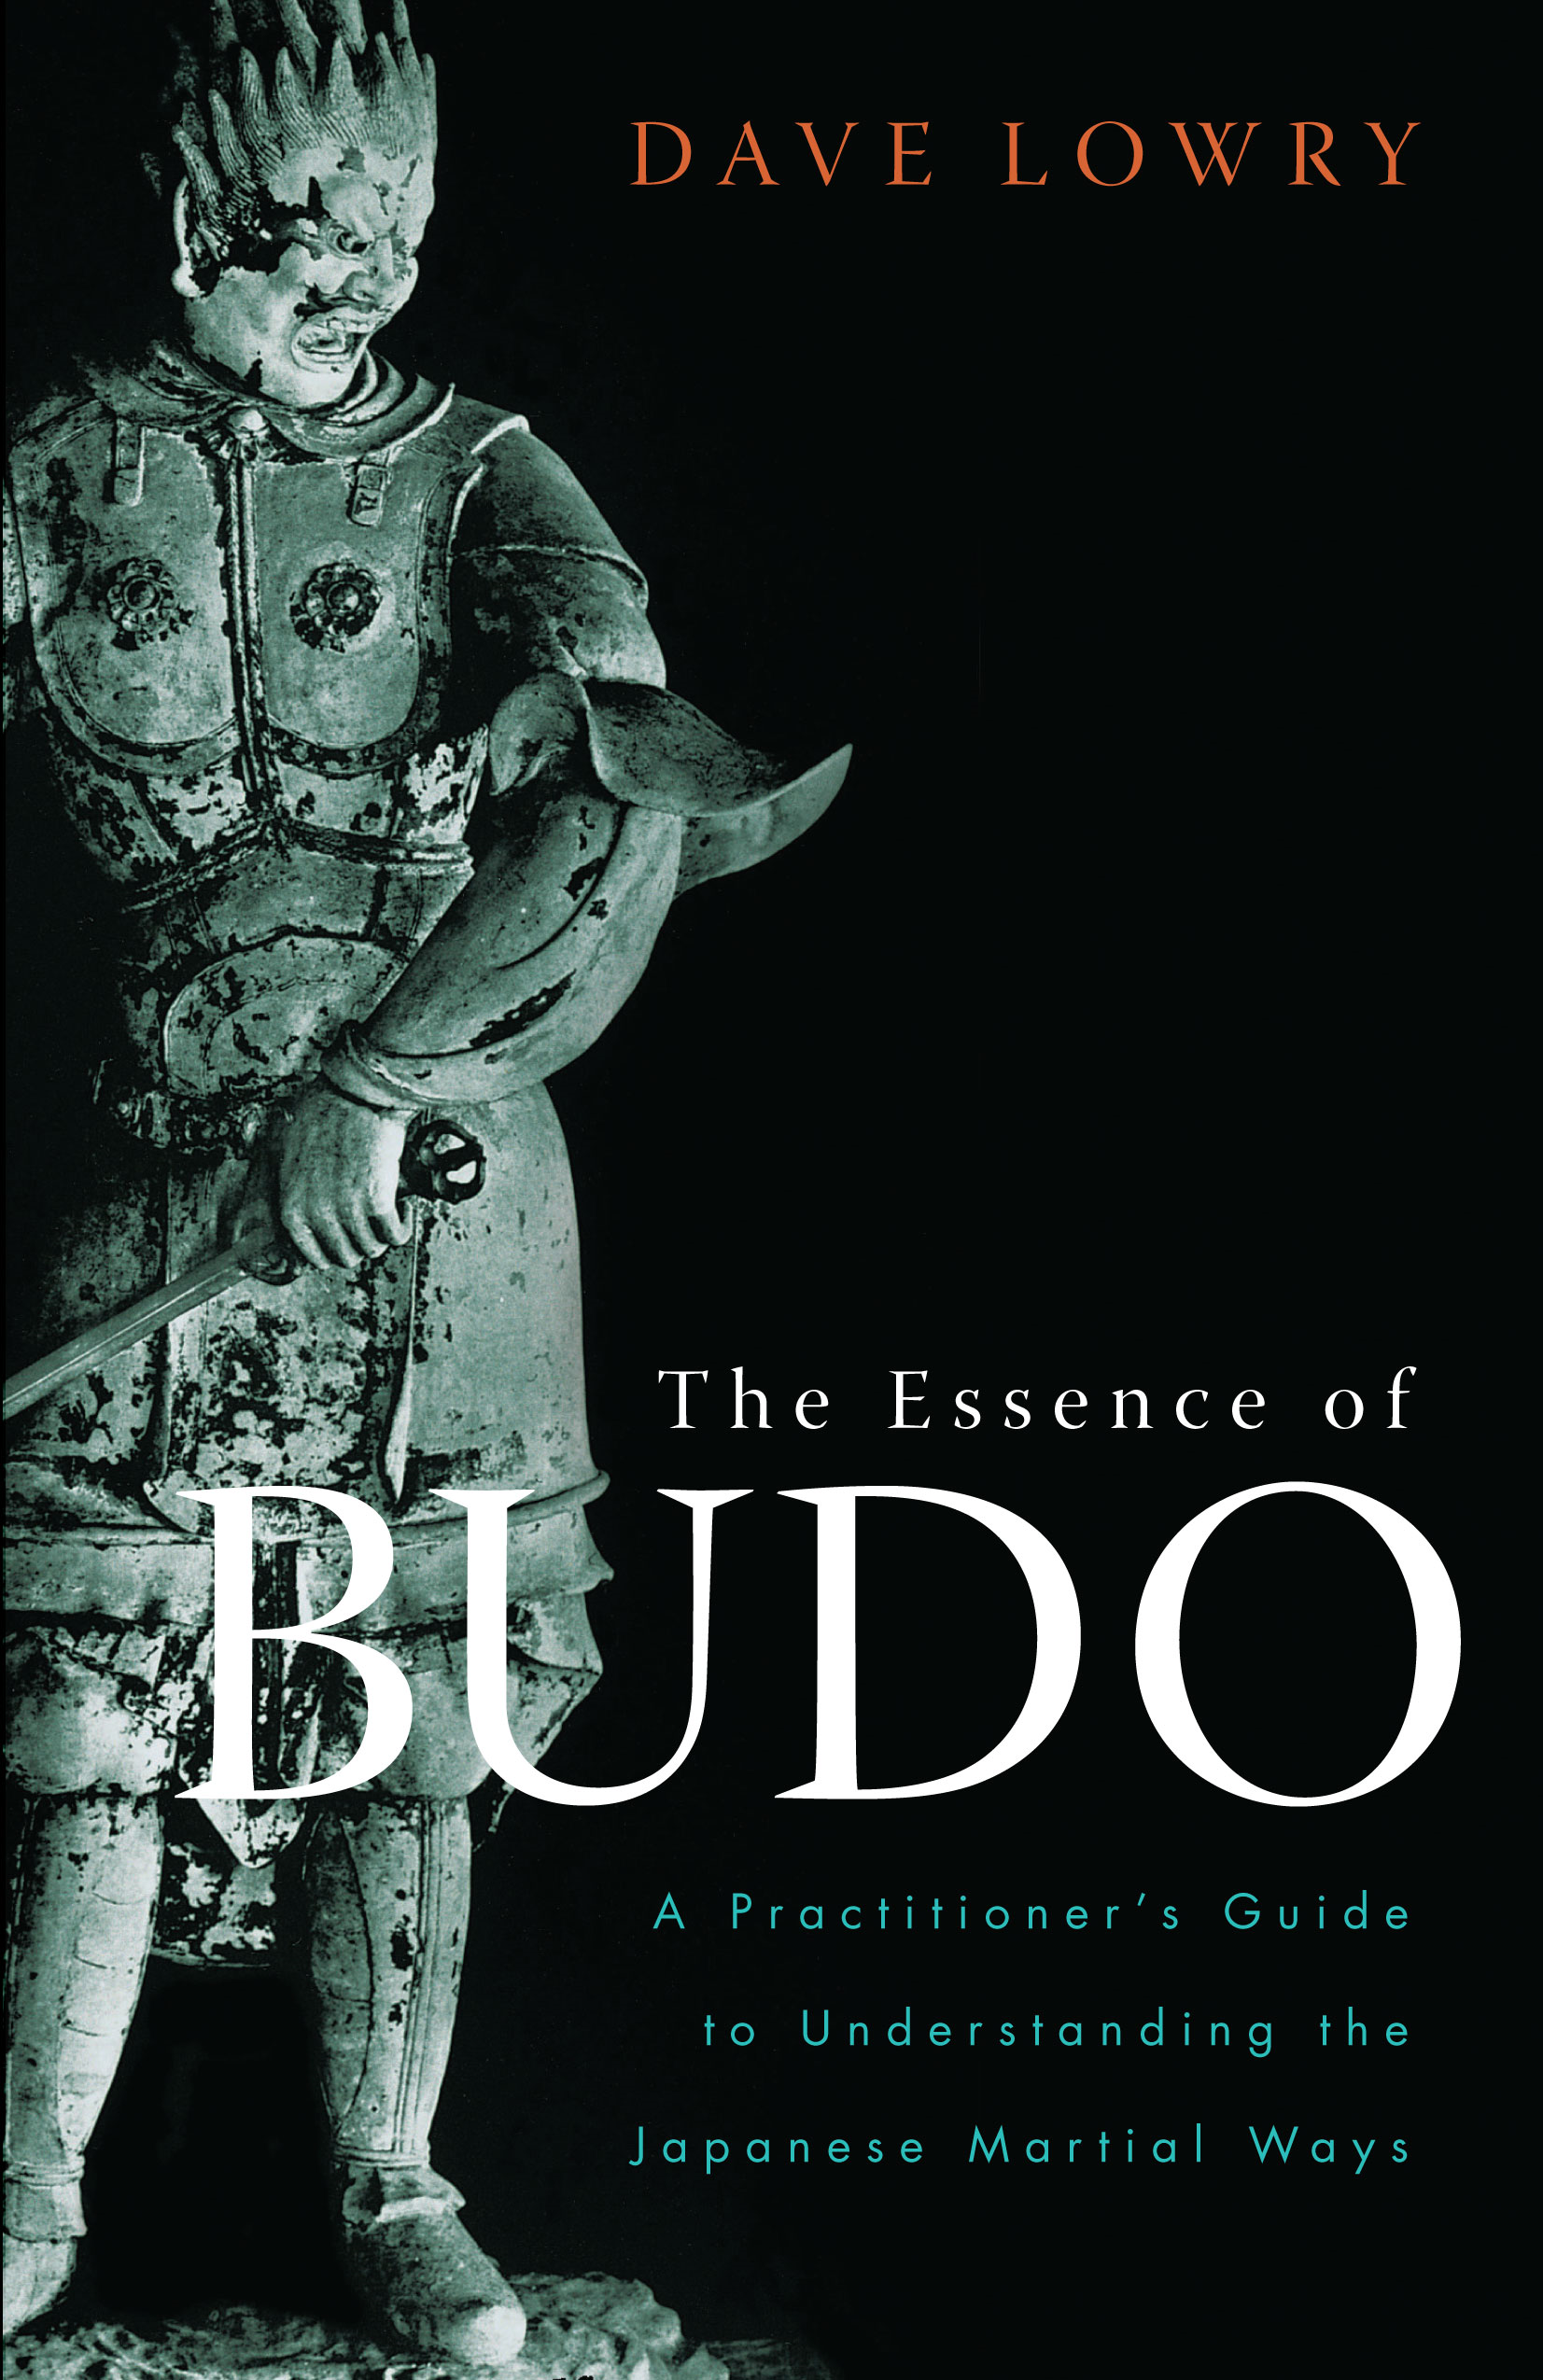 The Essence of Budo: A Practitioner's Guide to Understanding the Japanese Martial Ways By: Dave Lowry